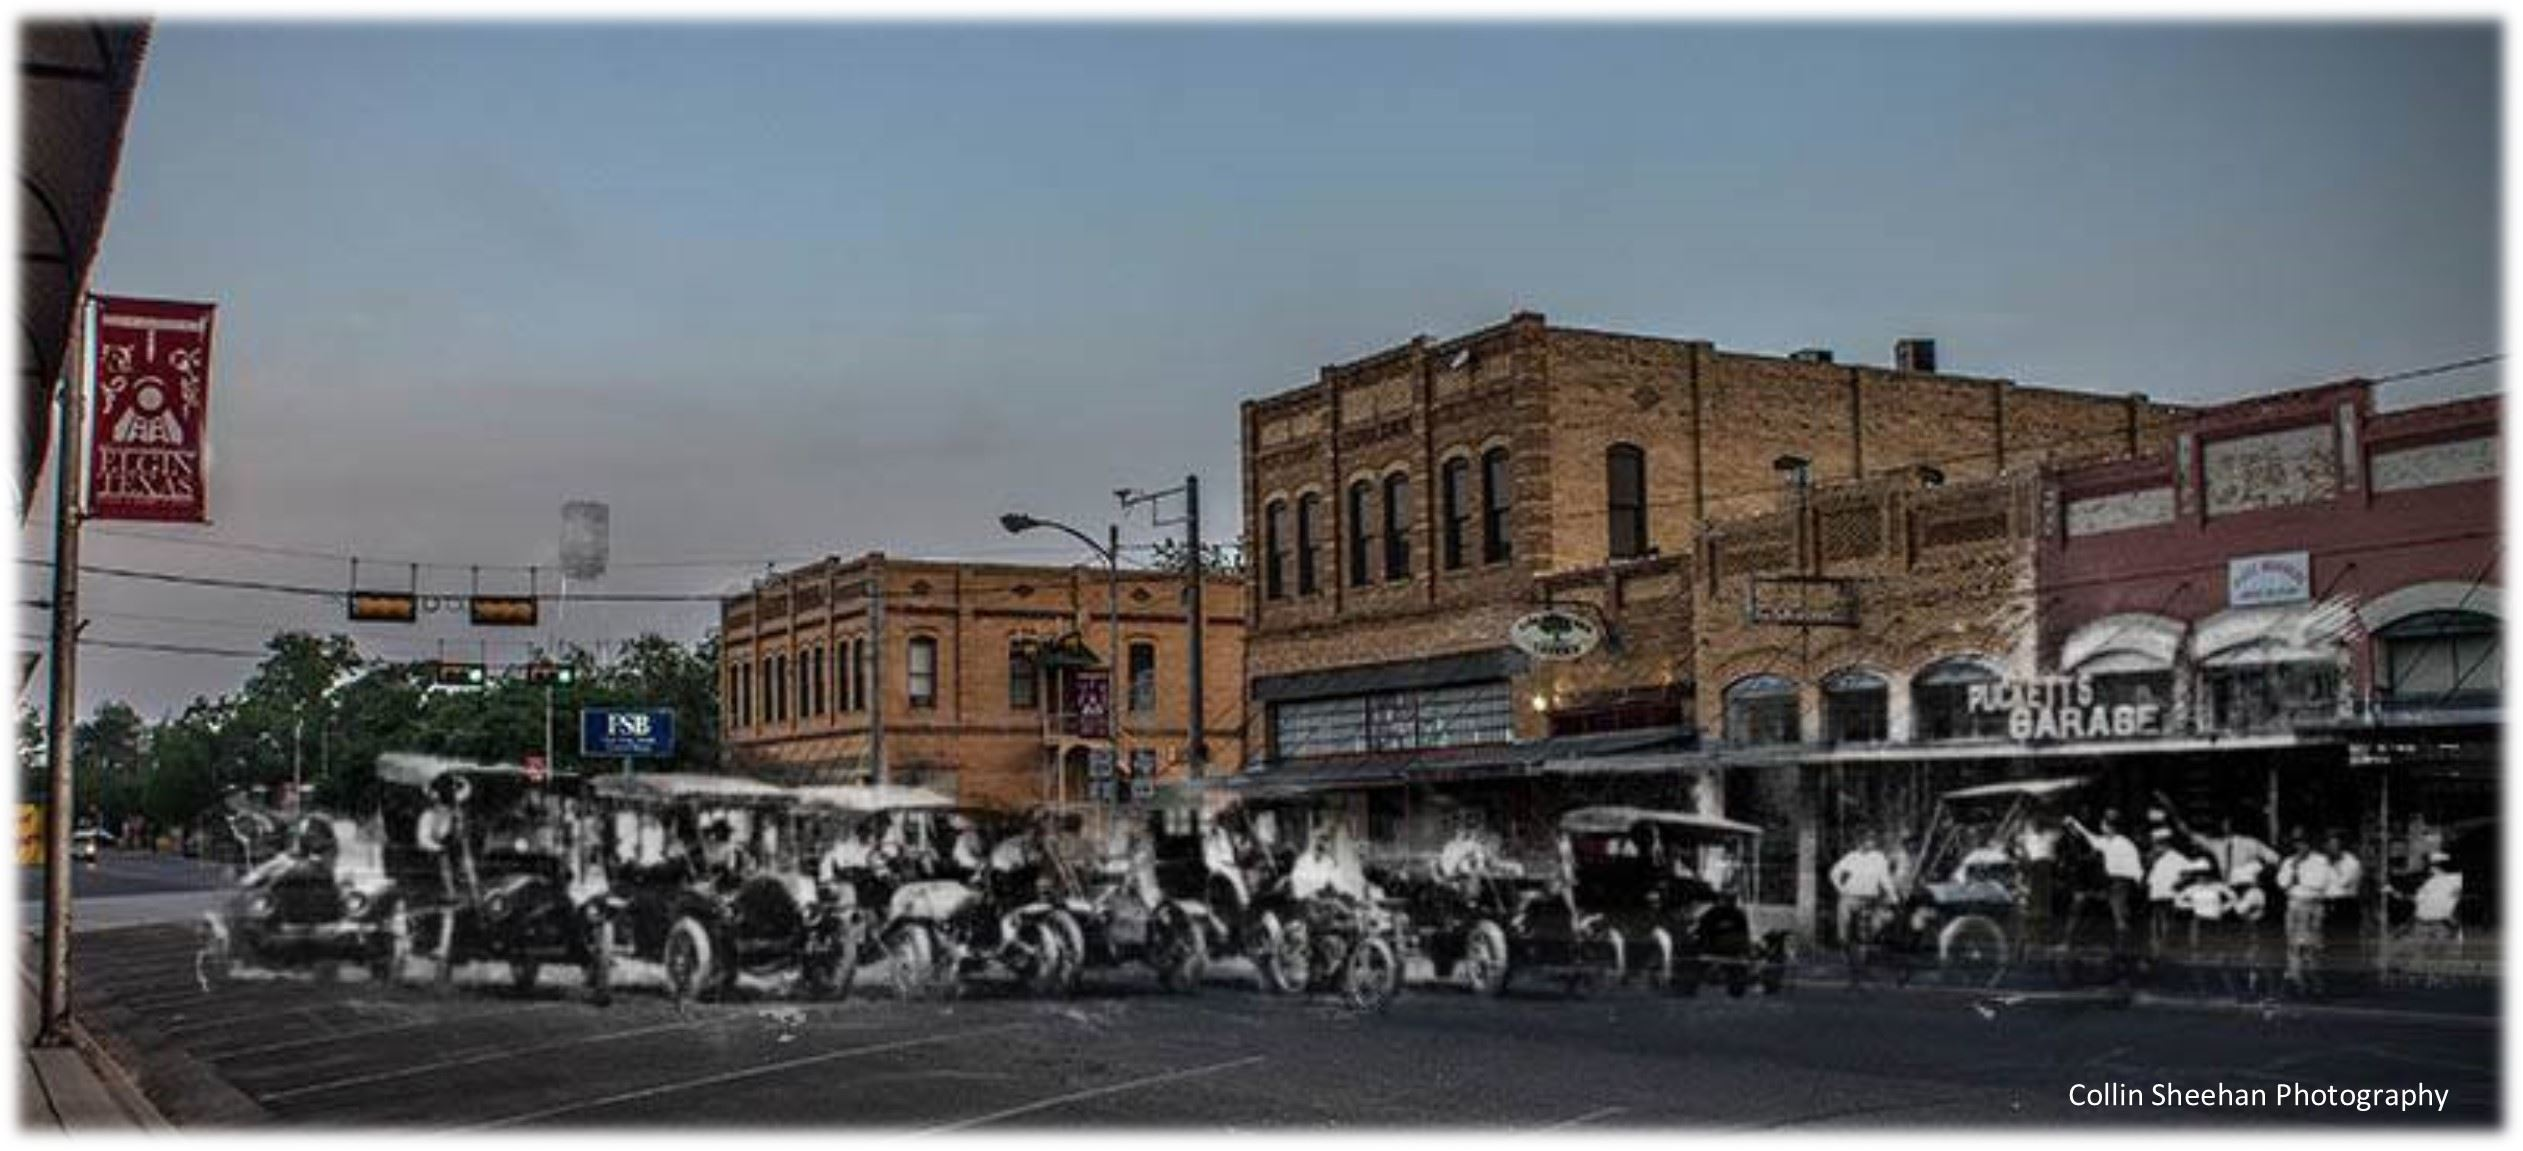 Downtown Past n Present - Collin Sheehan Photography